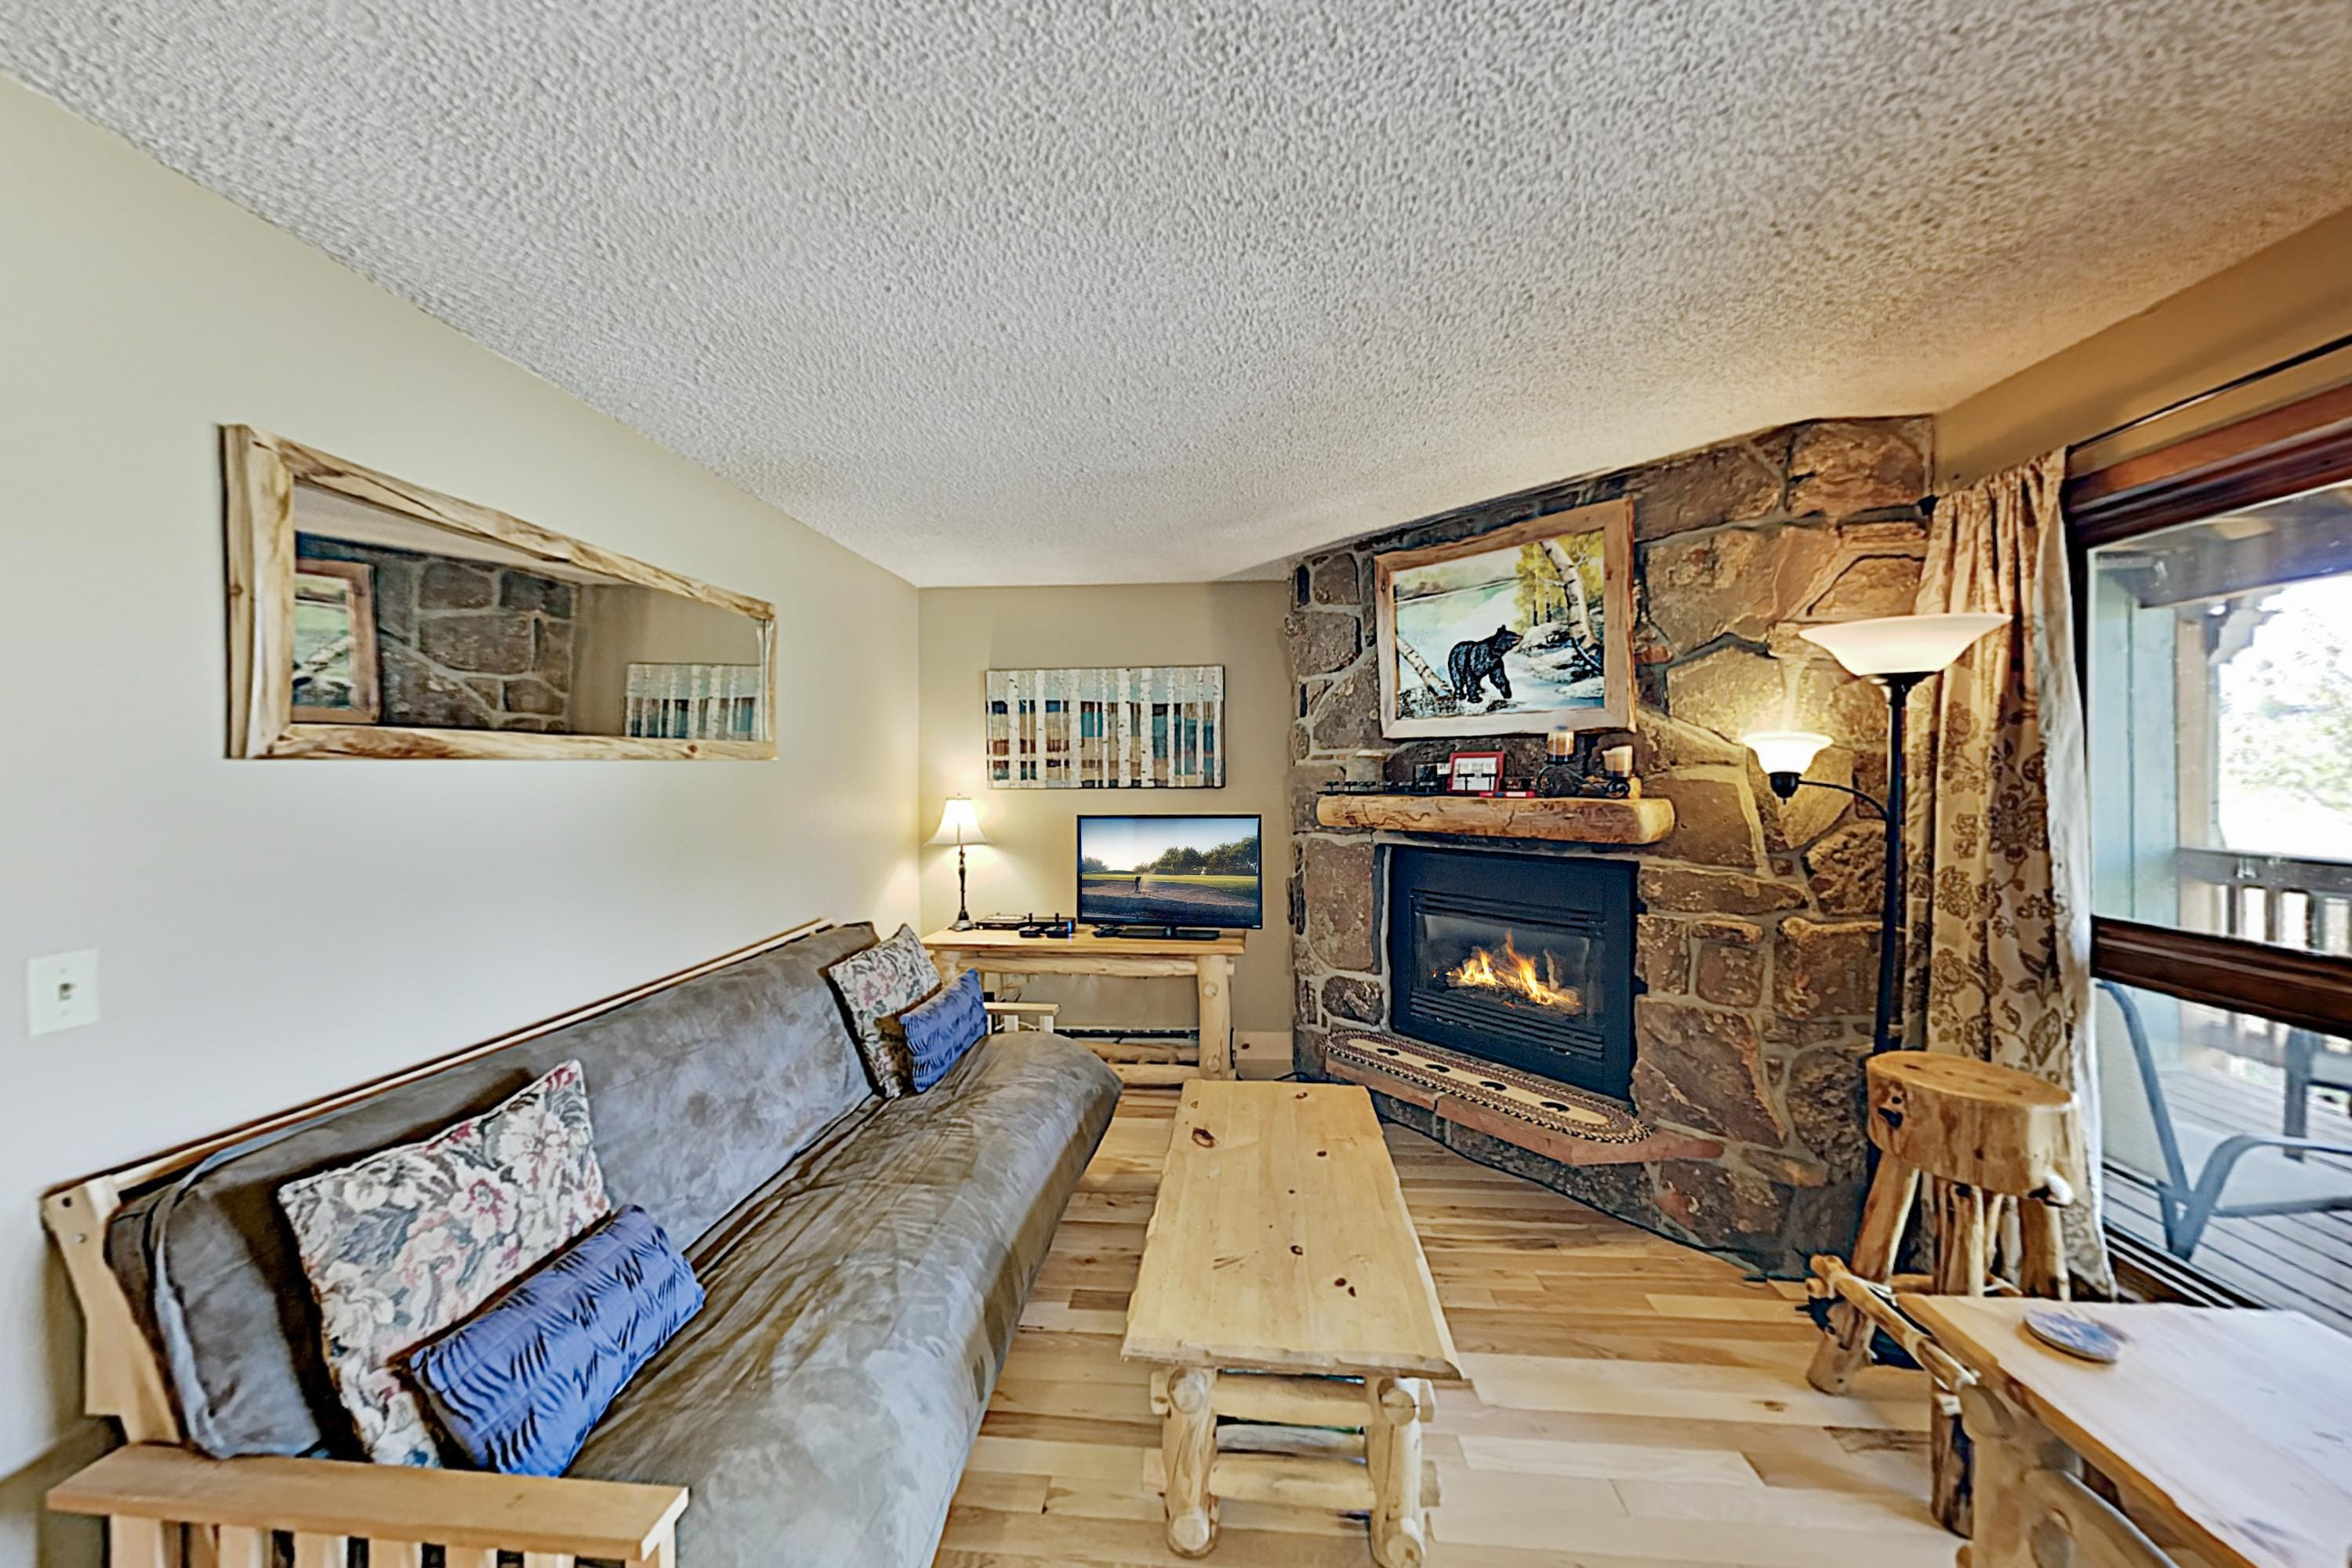 Property Image 1 - All-Season Retreat: Hot Tubs, Sauna - Near Dining